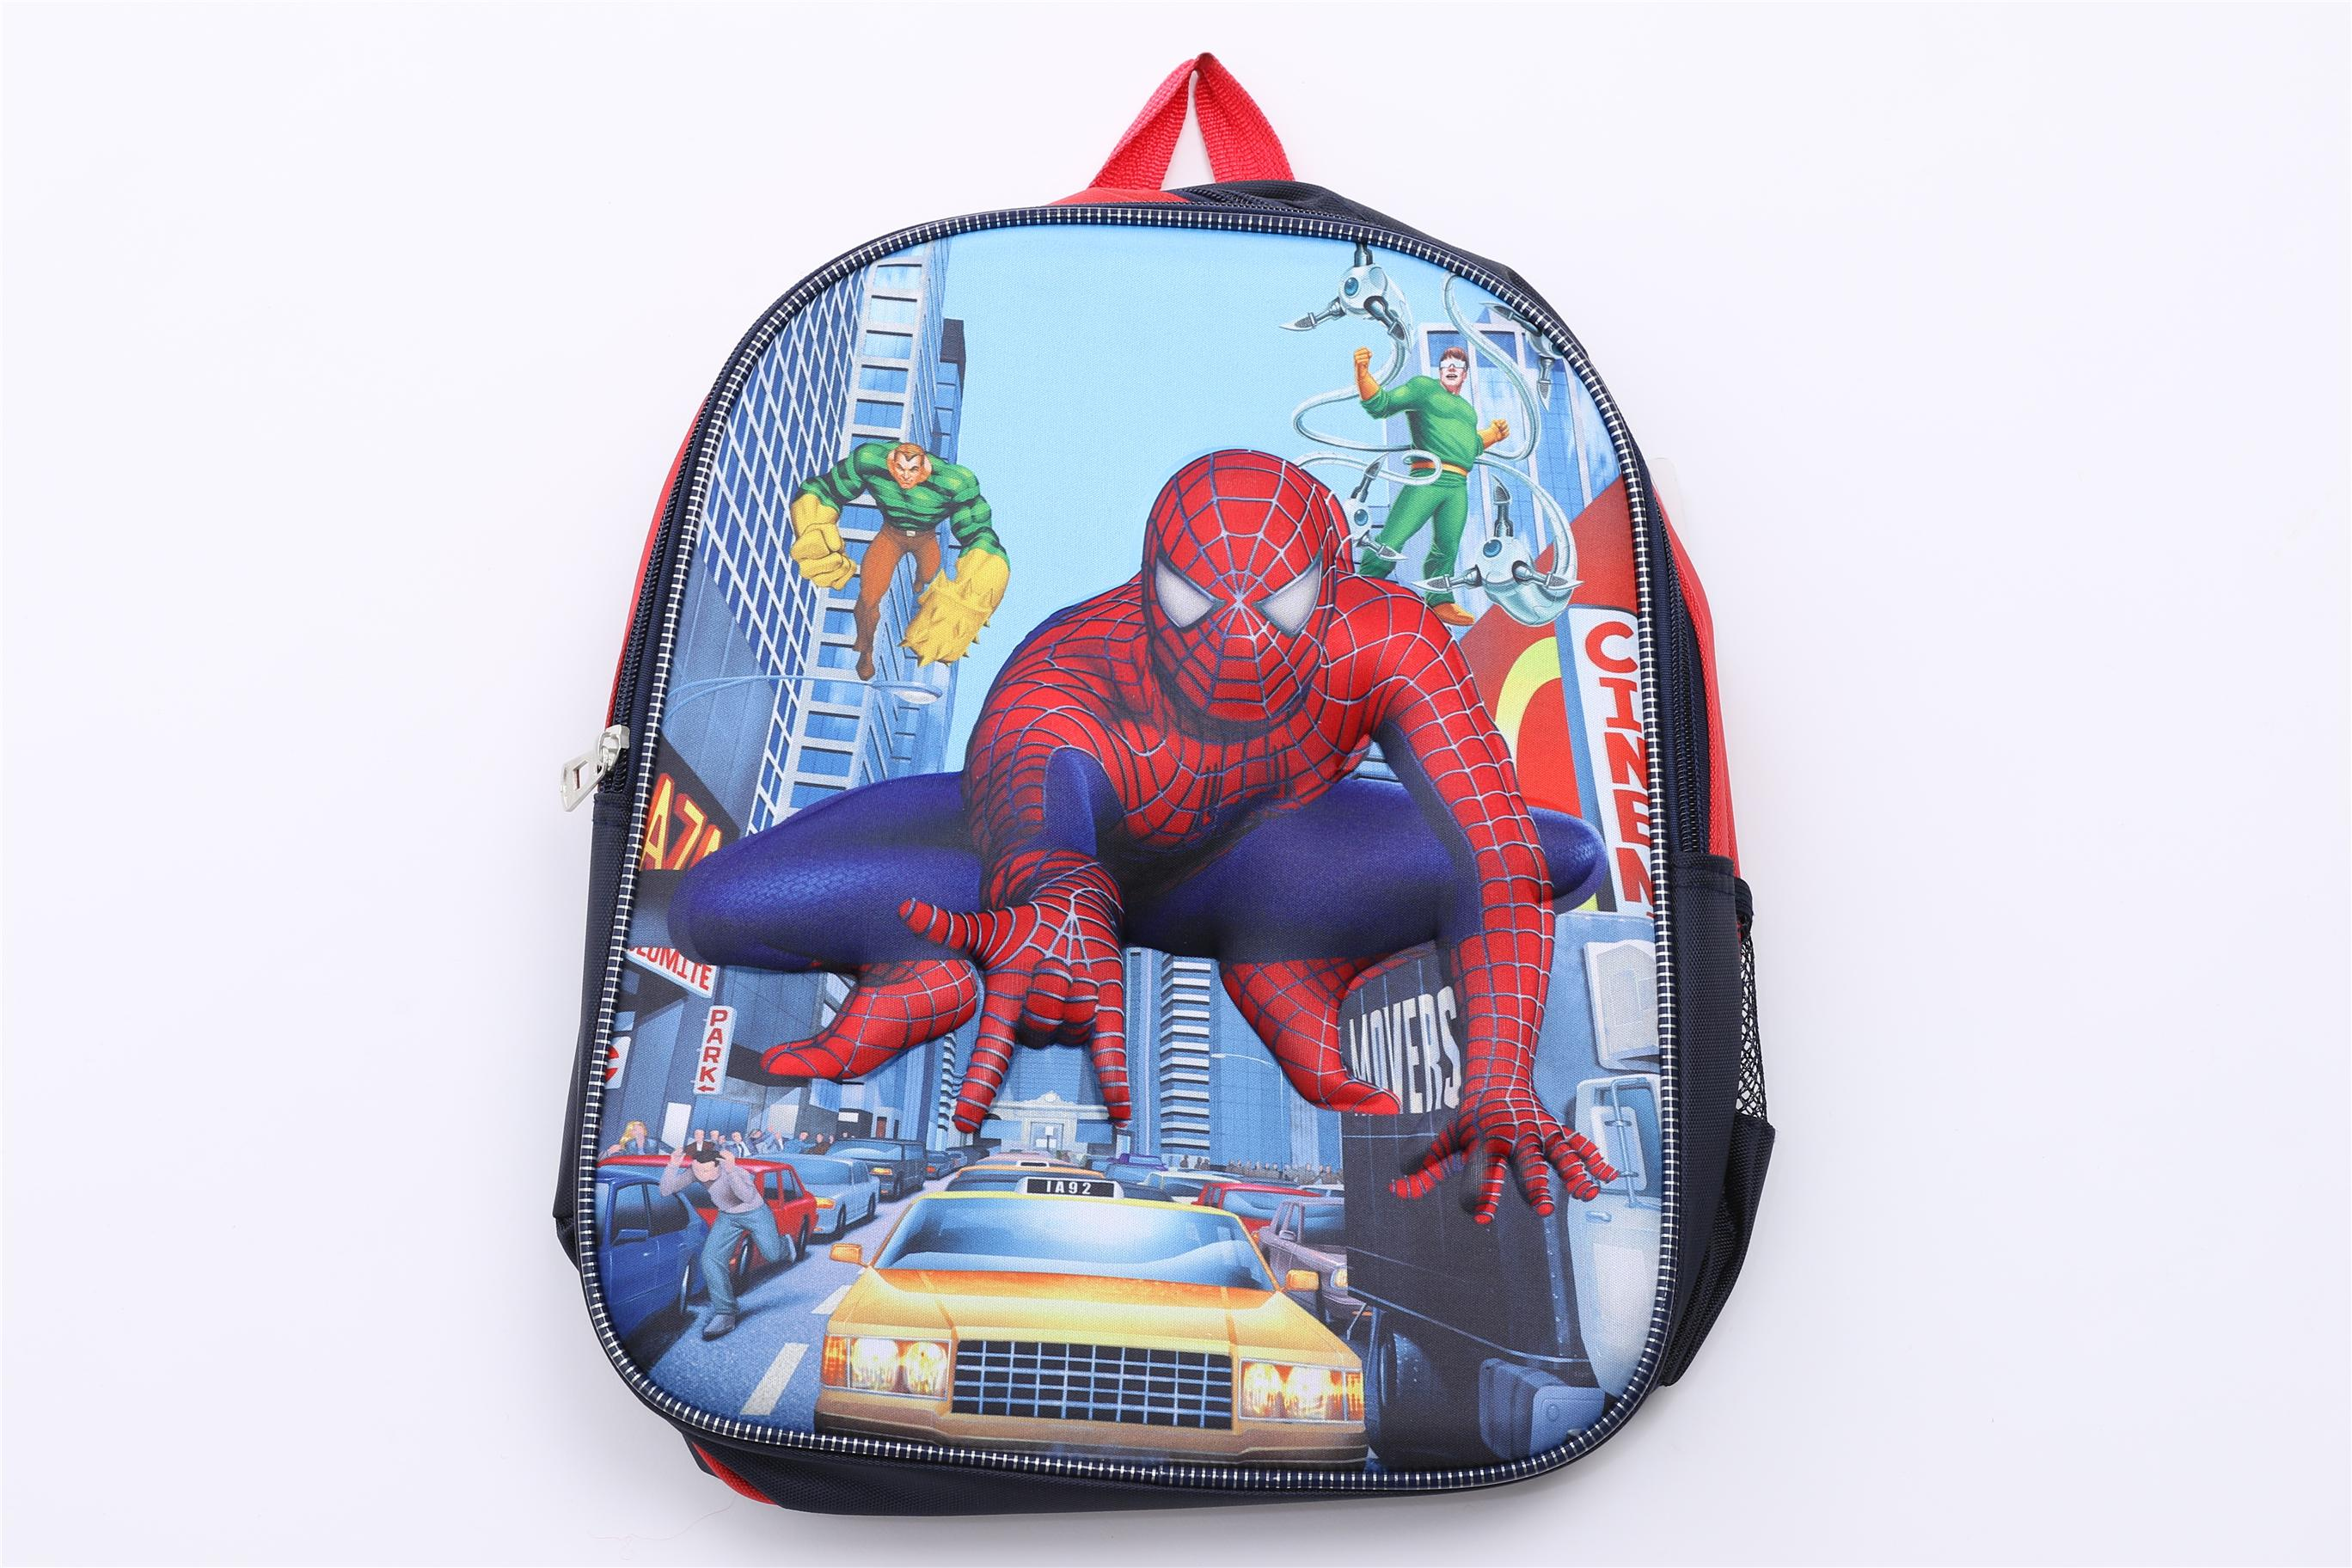 3D LITTLE BOY'S SPIDERMAN BACKPACK,SCHOOL BAG,SHOULDER BAG